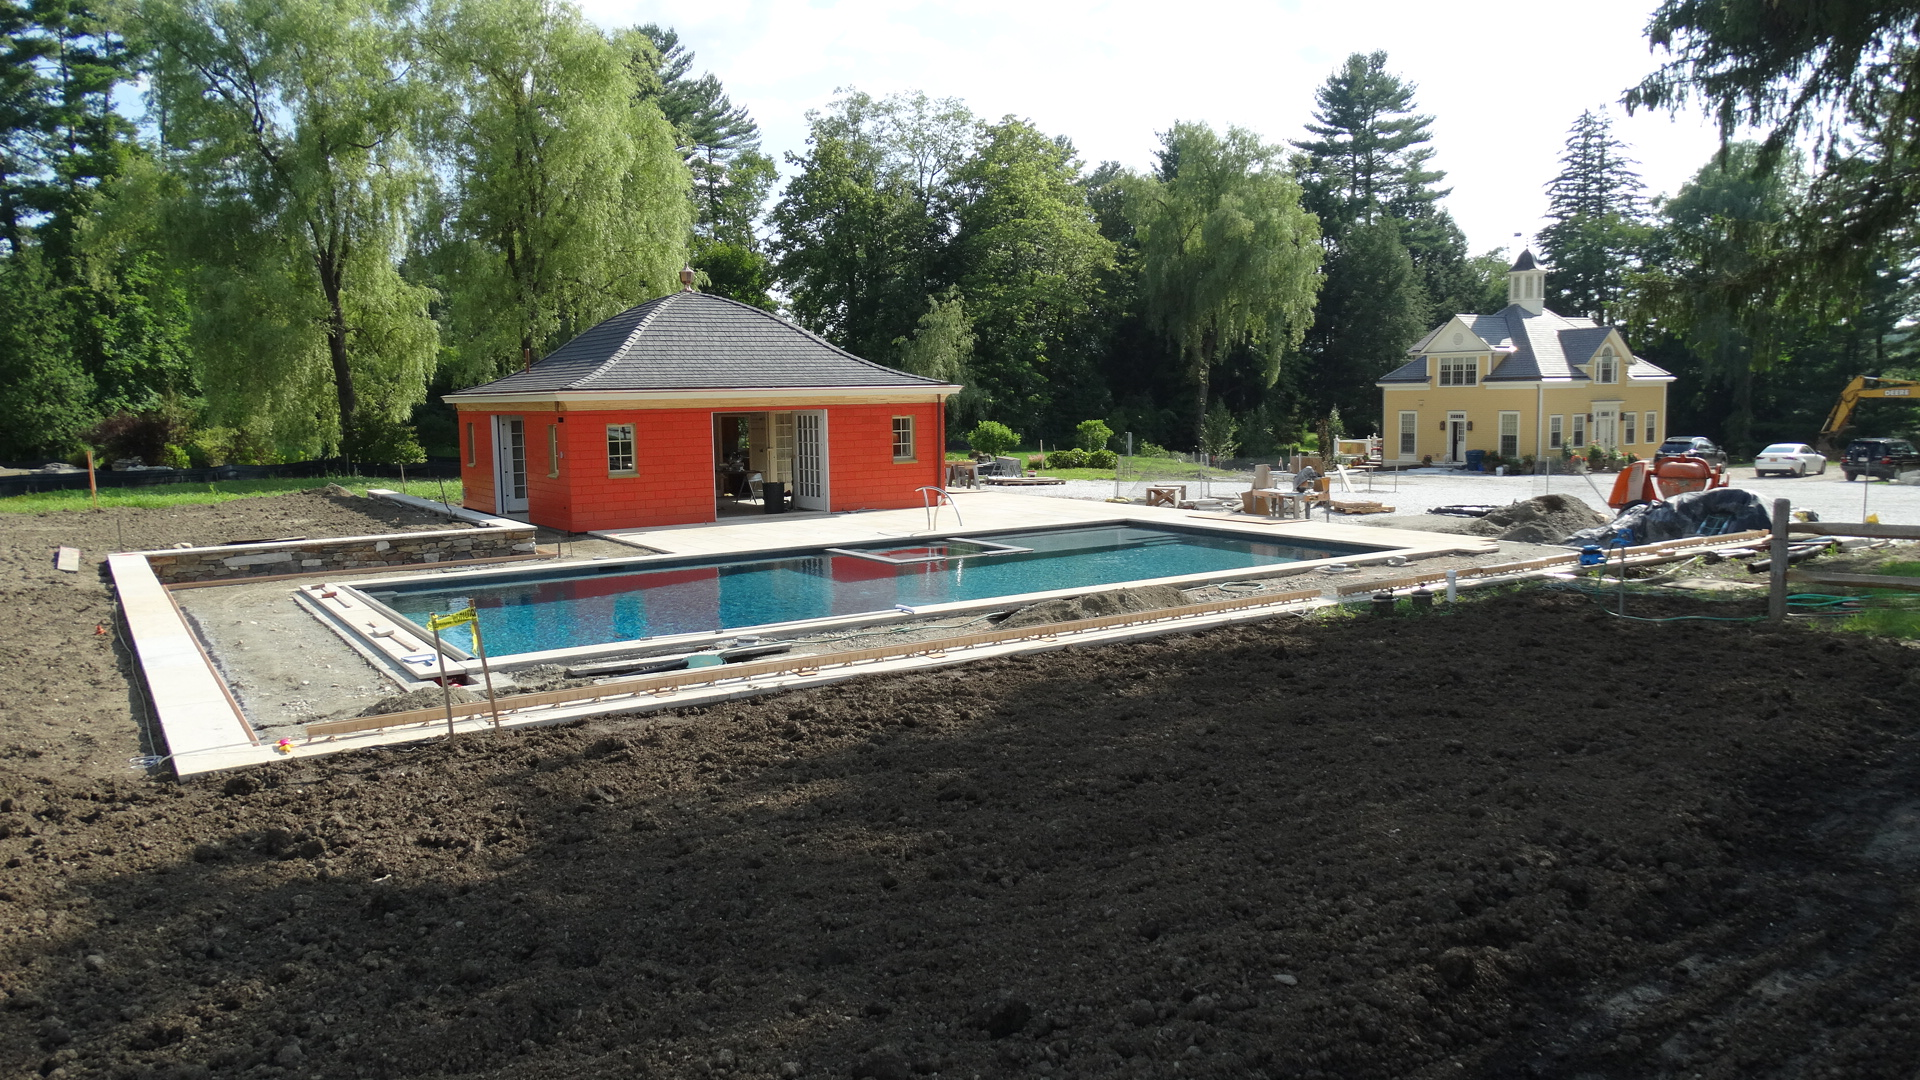 Linden Brook Farm pool under construction 25′ x 50′